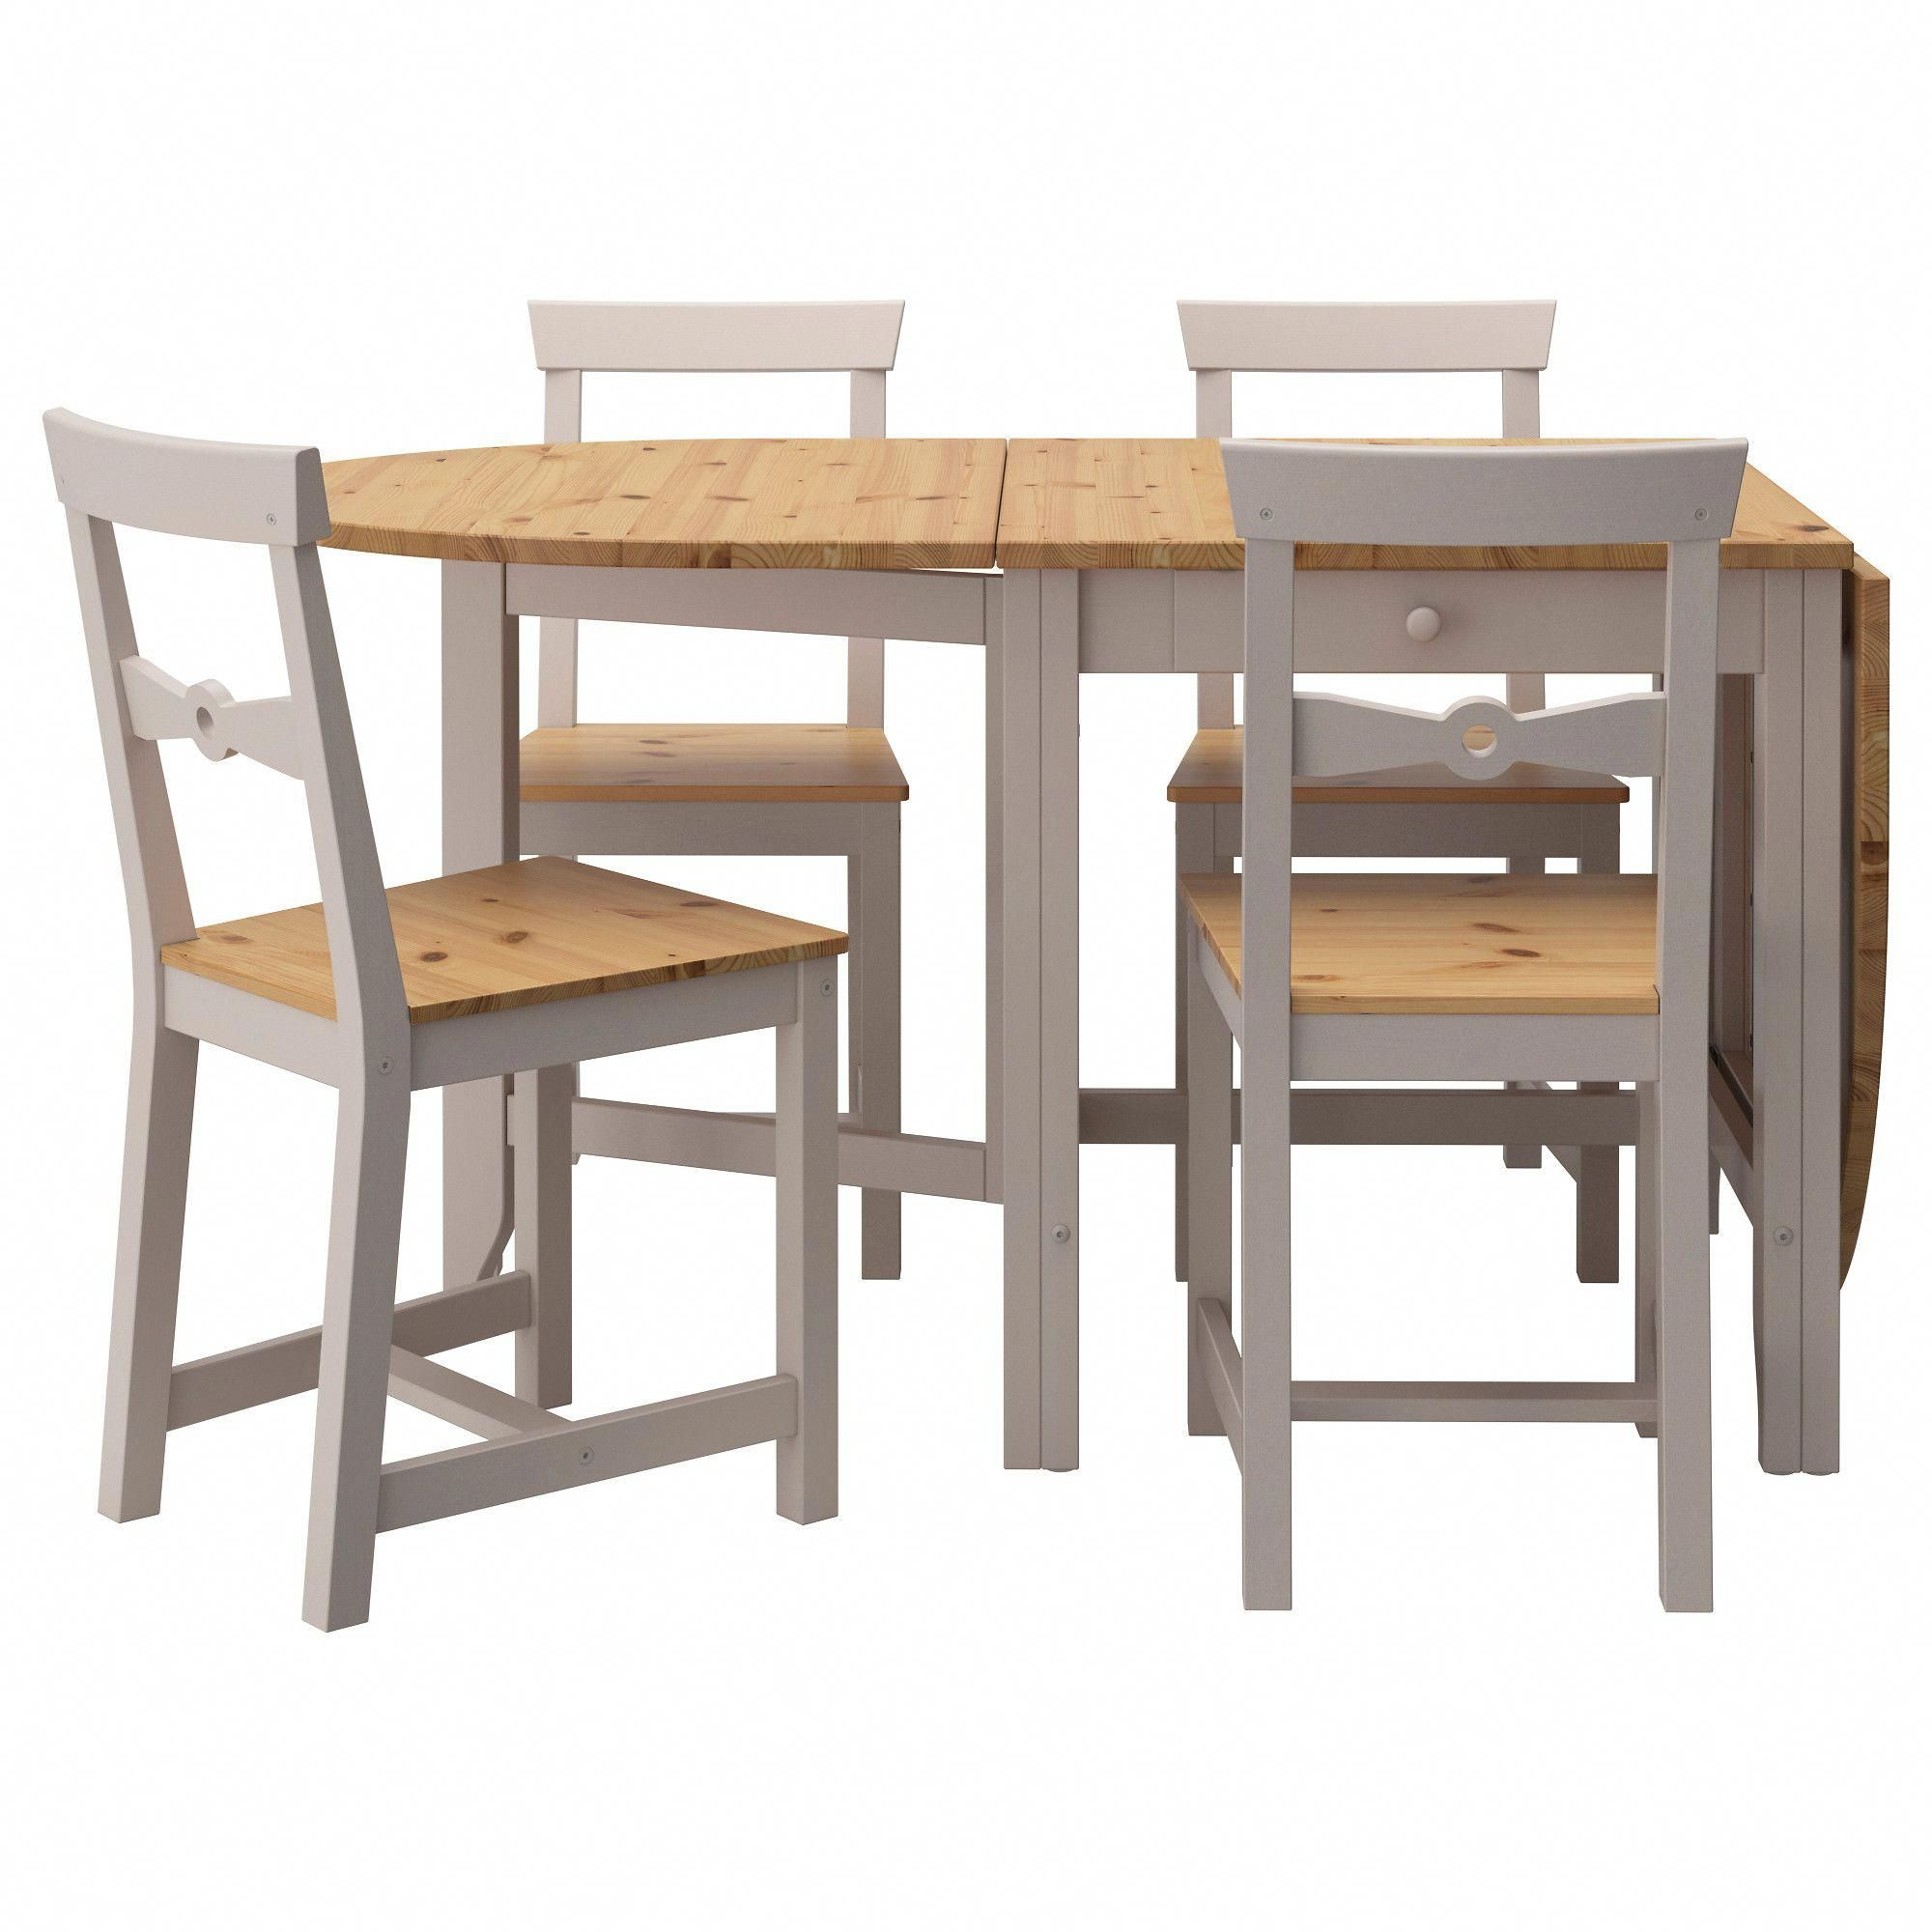 Gamleby Table And 4 Chairs Ikea Kitchentable Ikea Dining